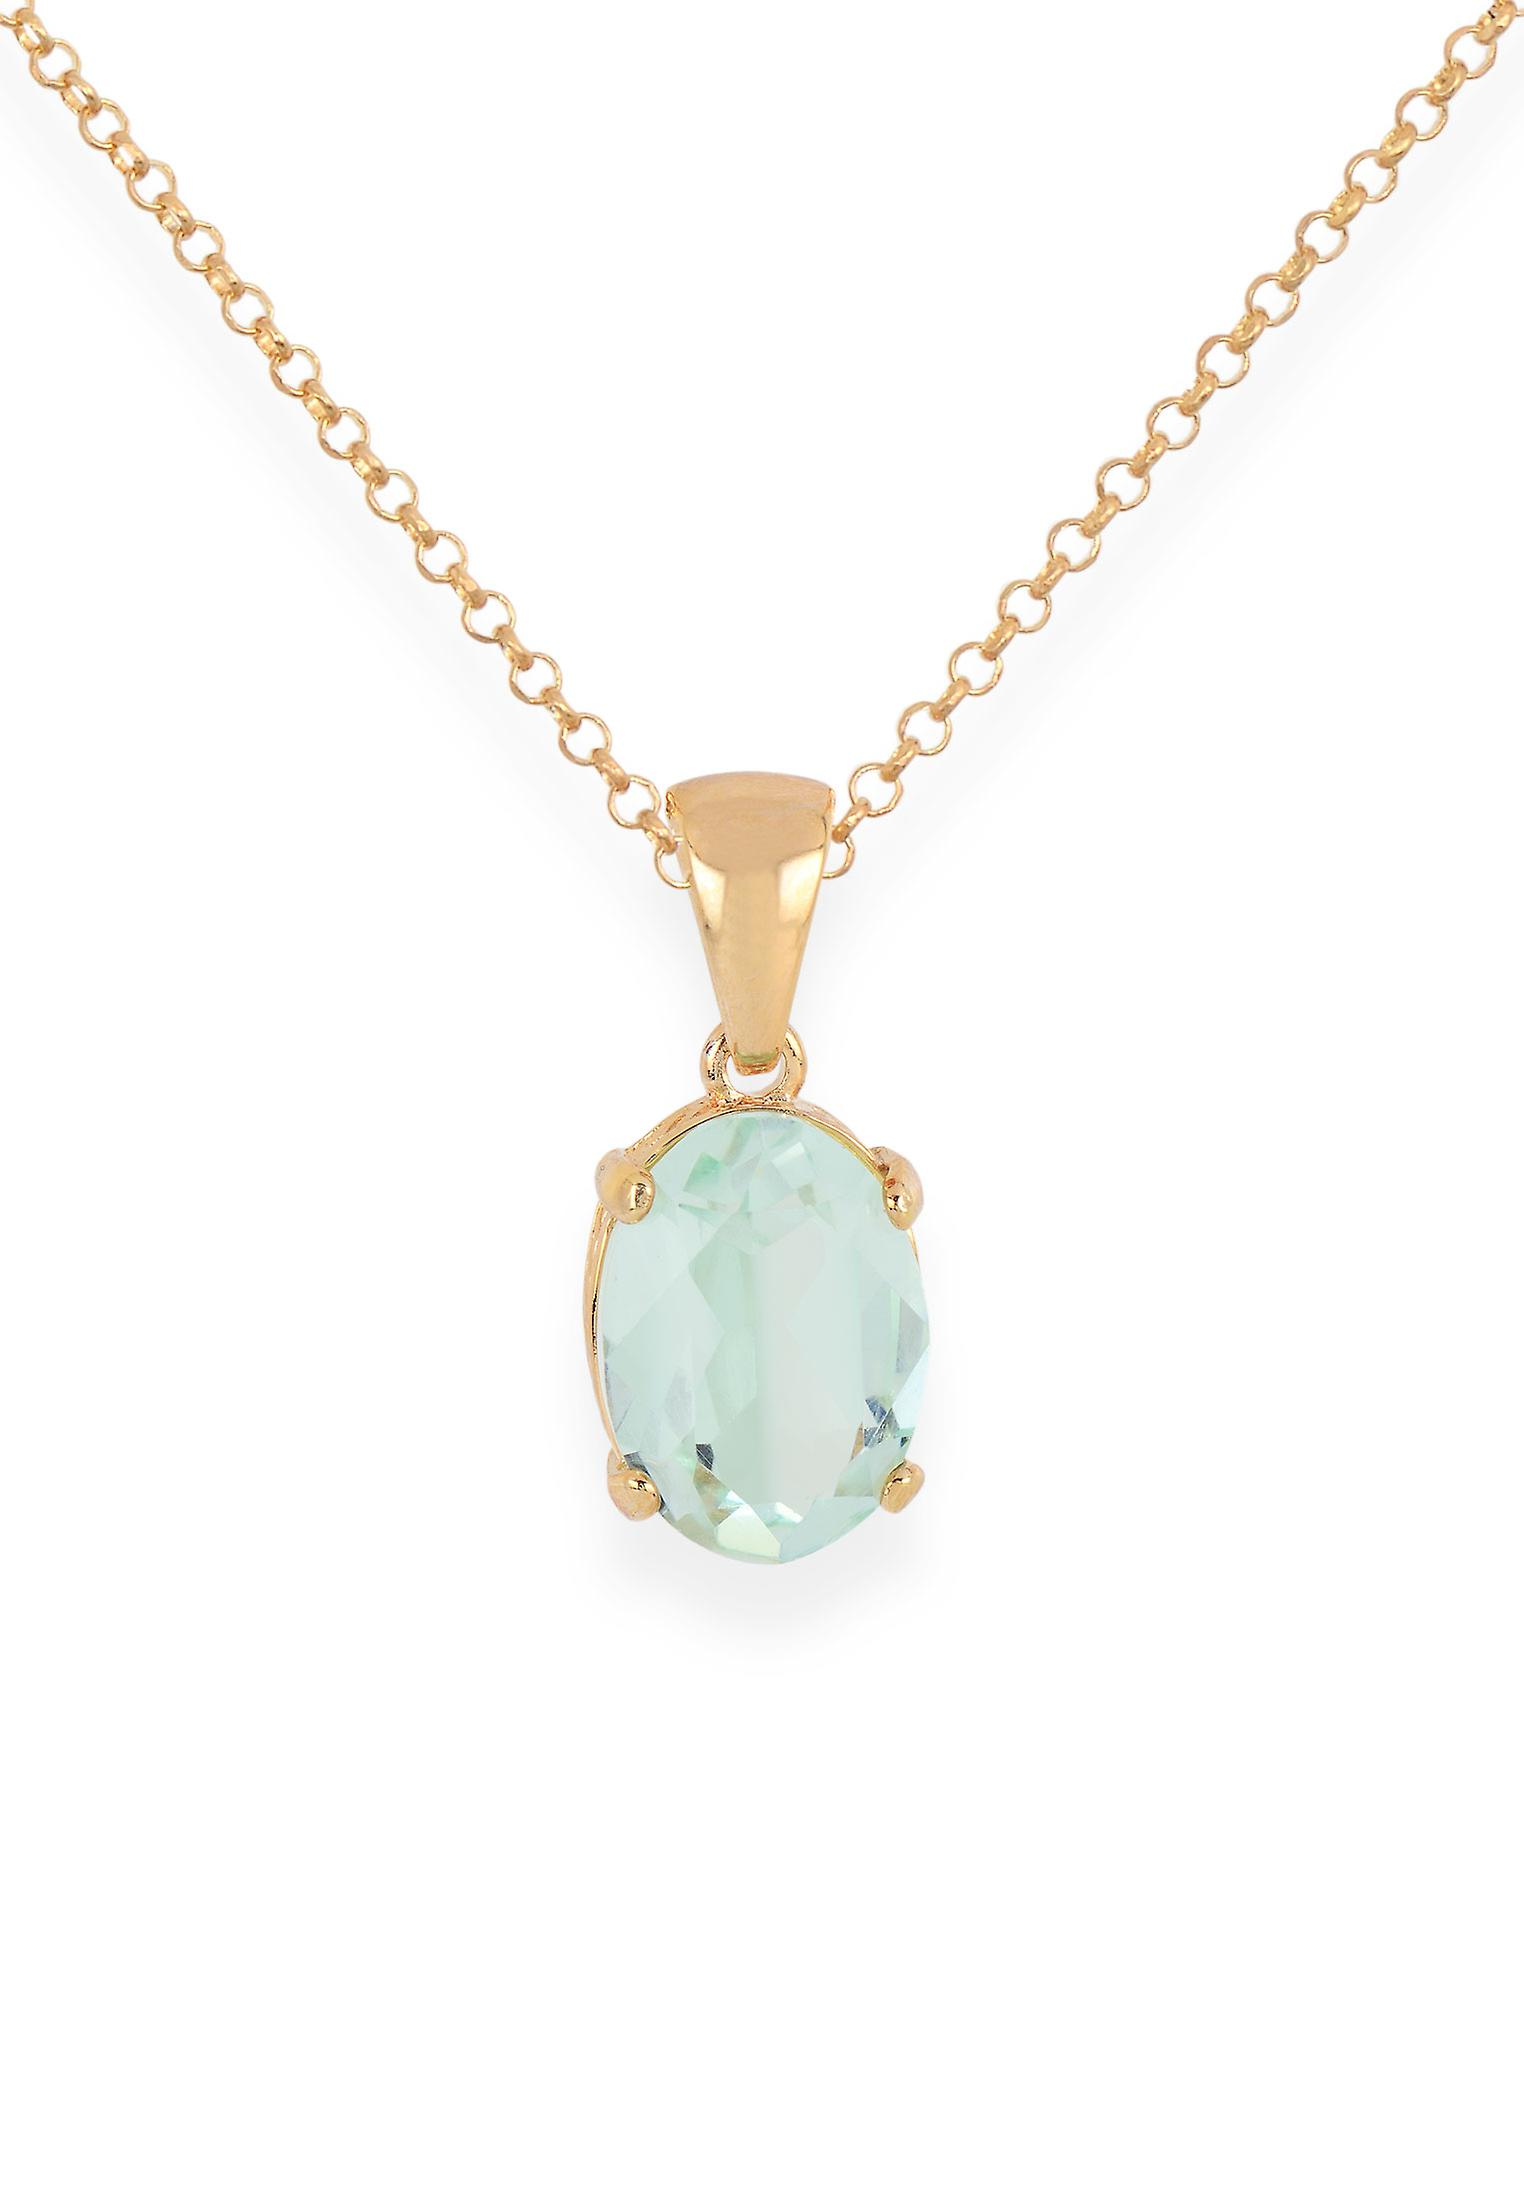 Green pendant with crystals from Swarovski 9193